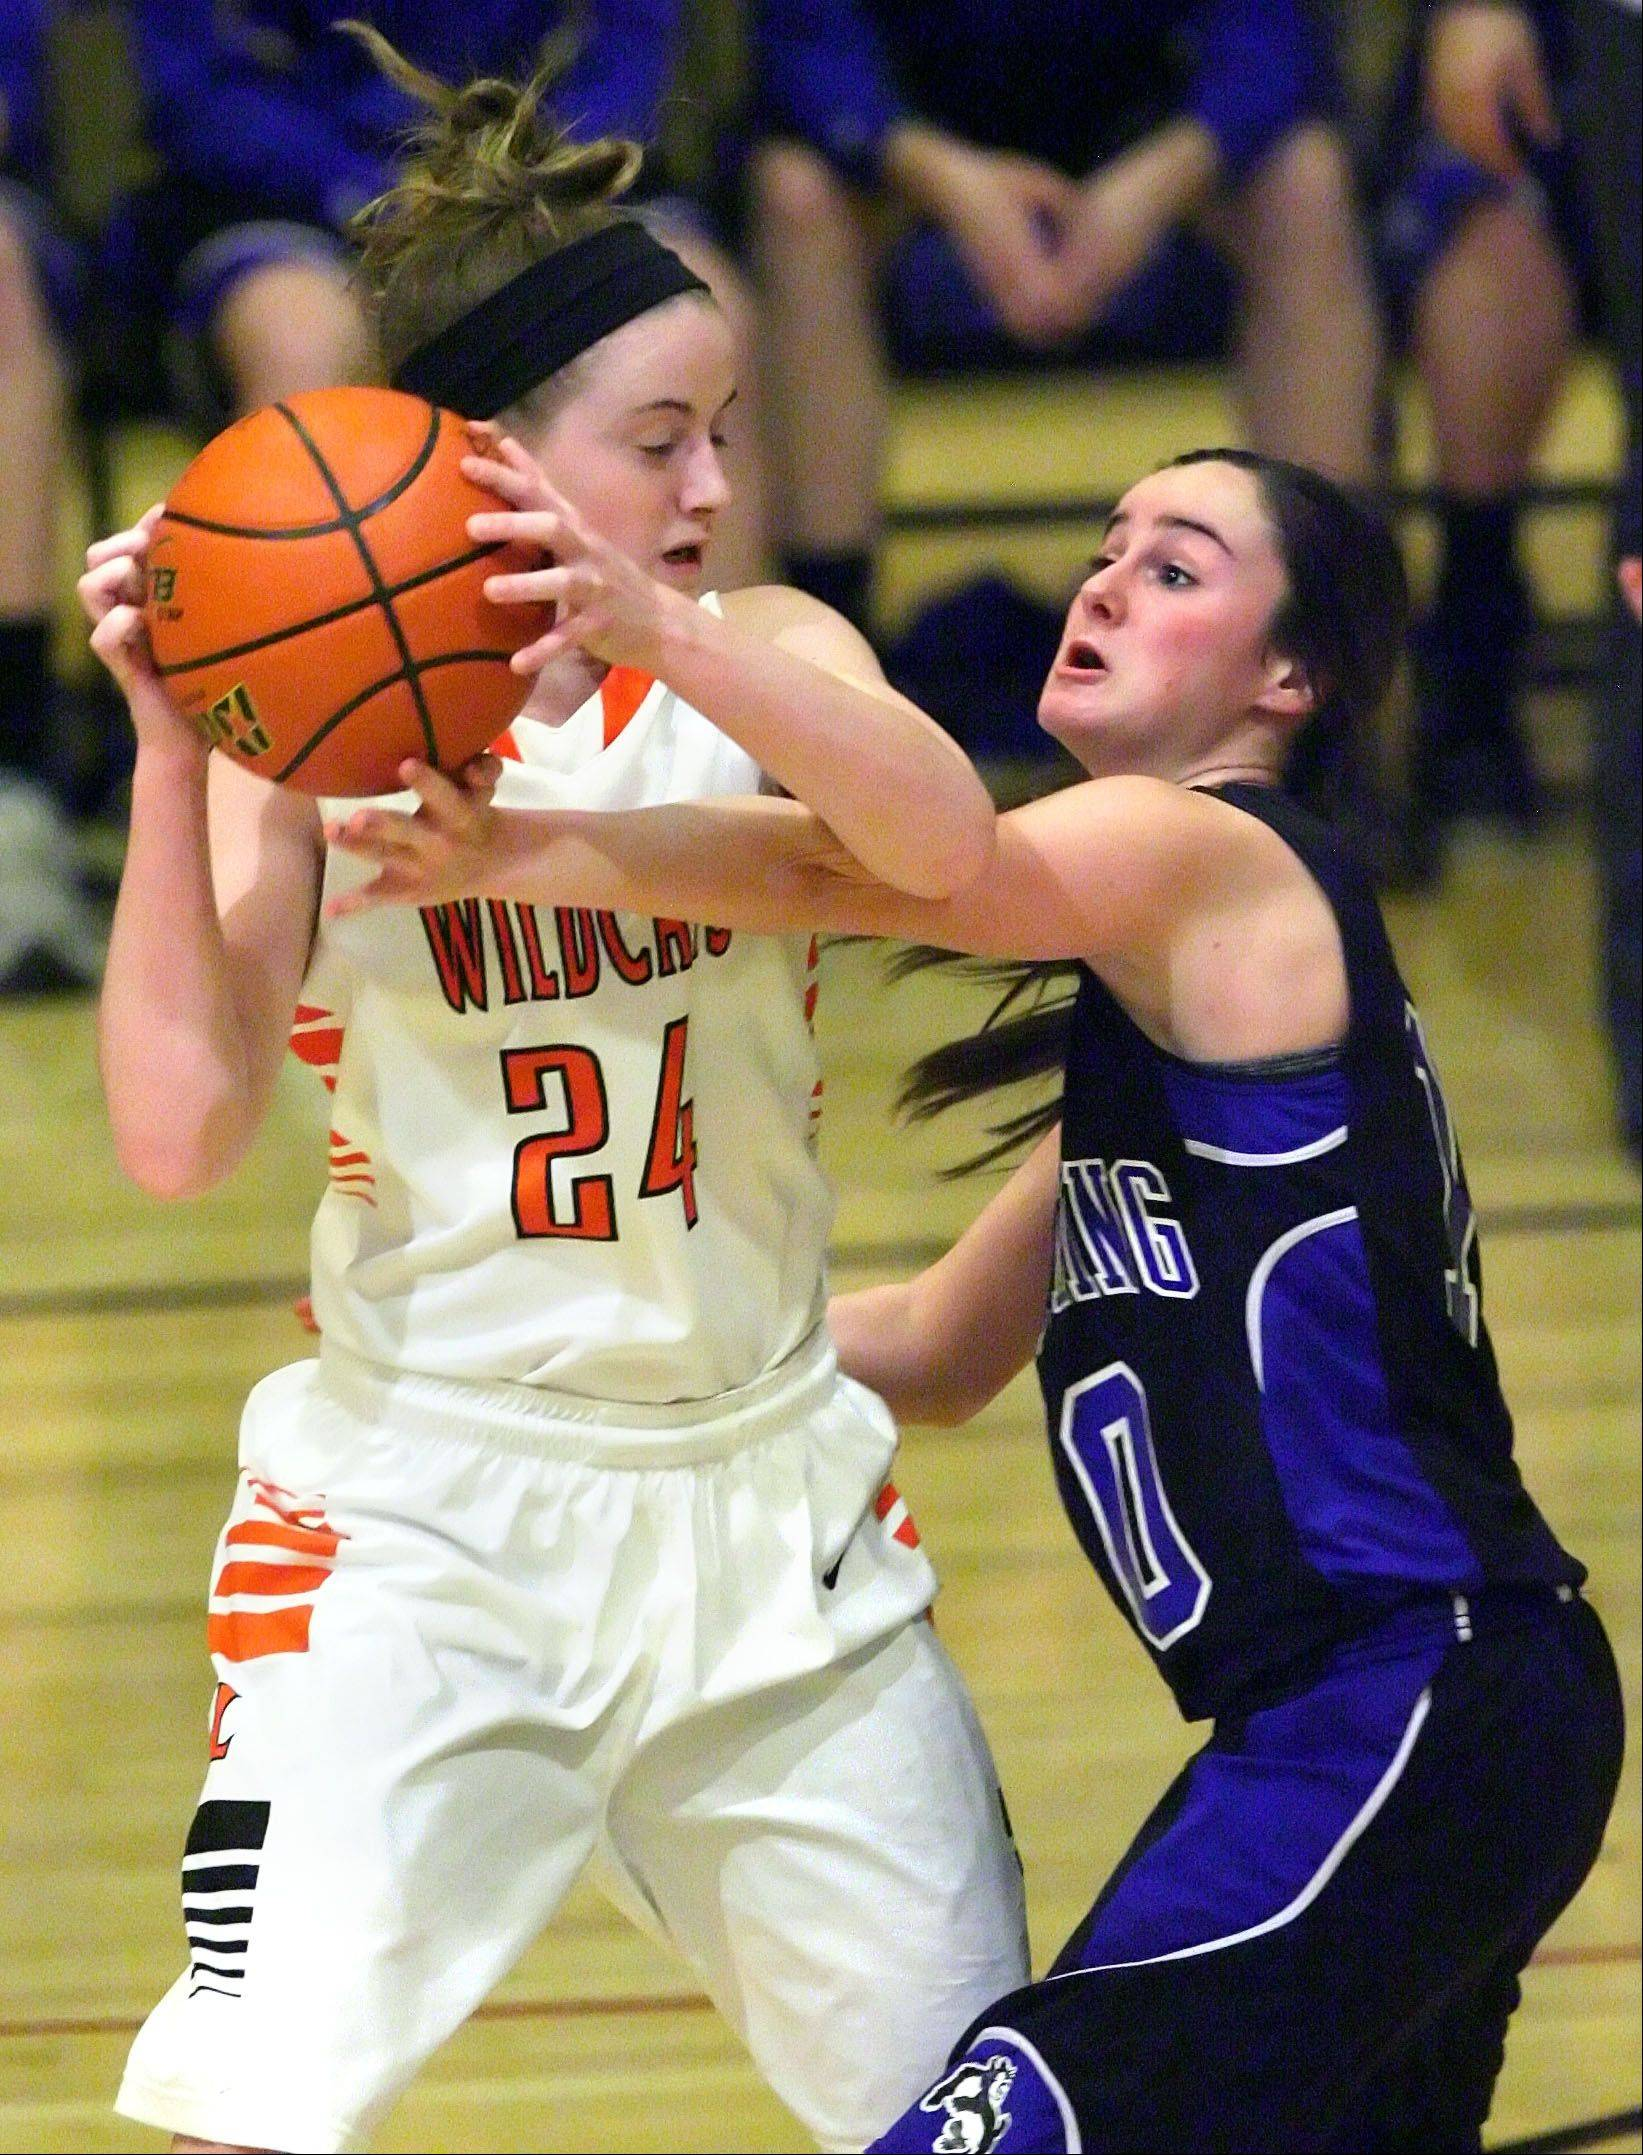 Libertyville's Rosie Lynch and Wheeling's Gianna Calistro battle for the ball during Monday's Class 4A regional game at Wheeling High School.